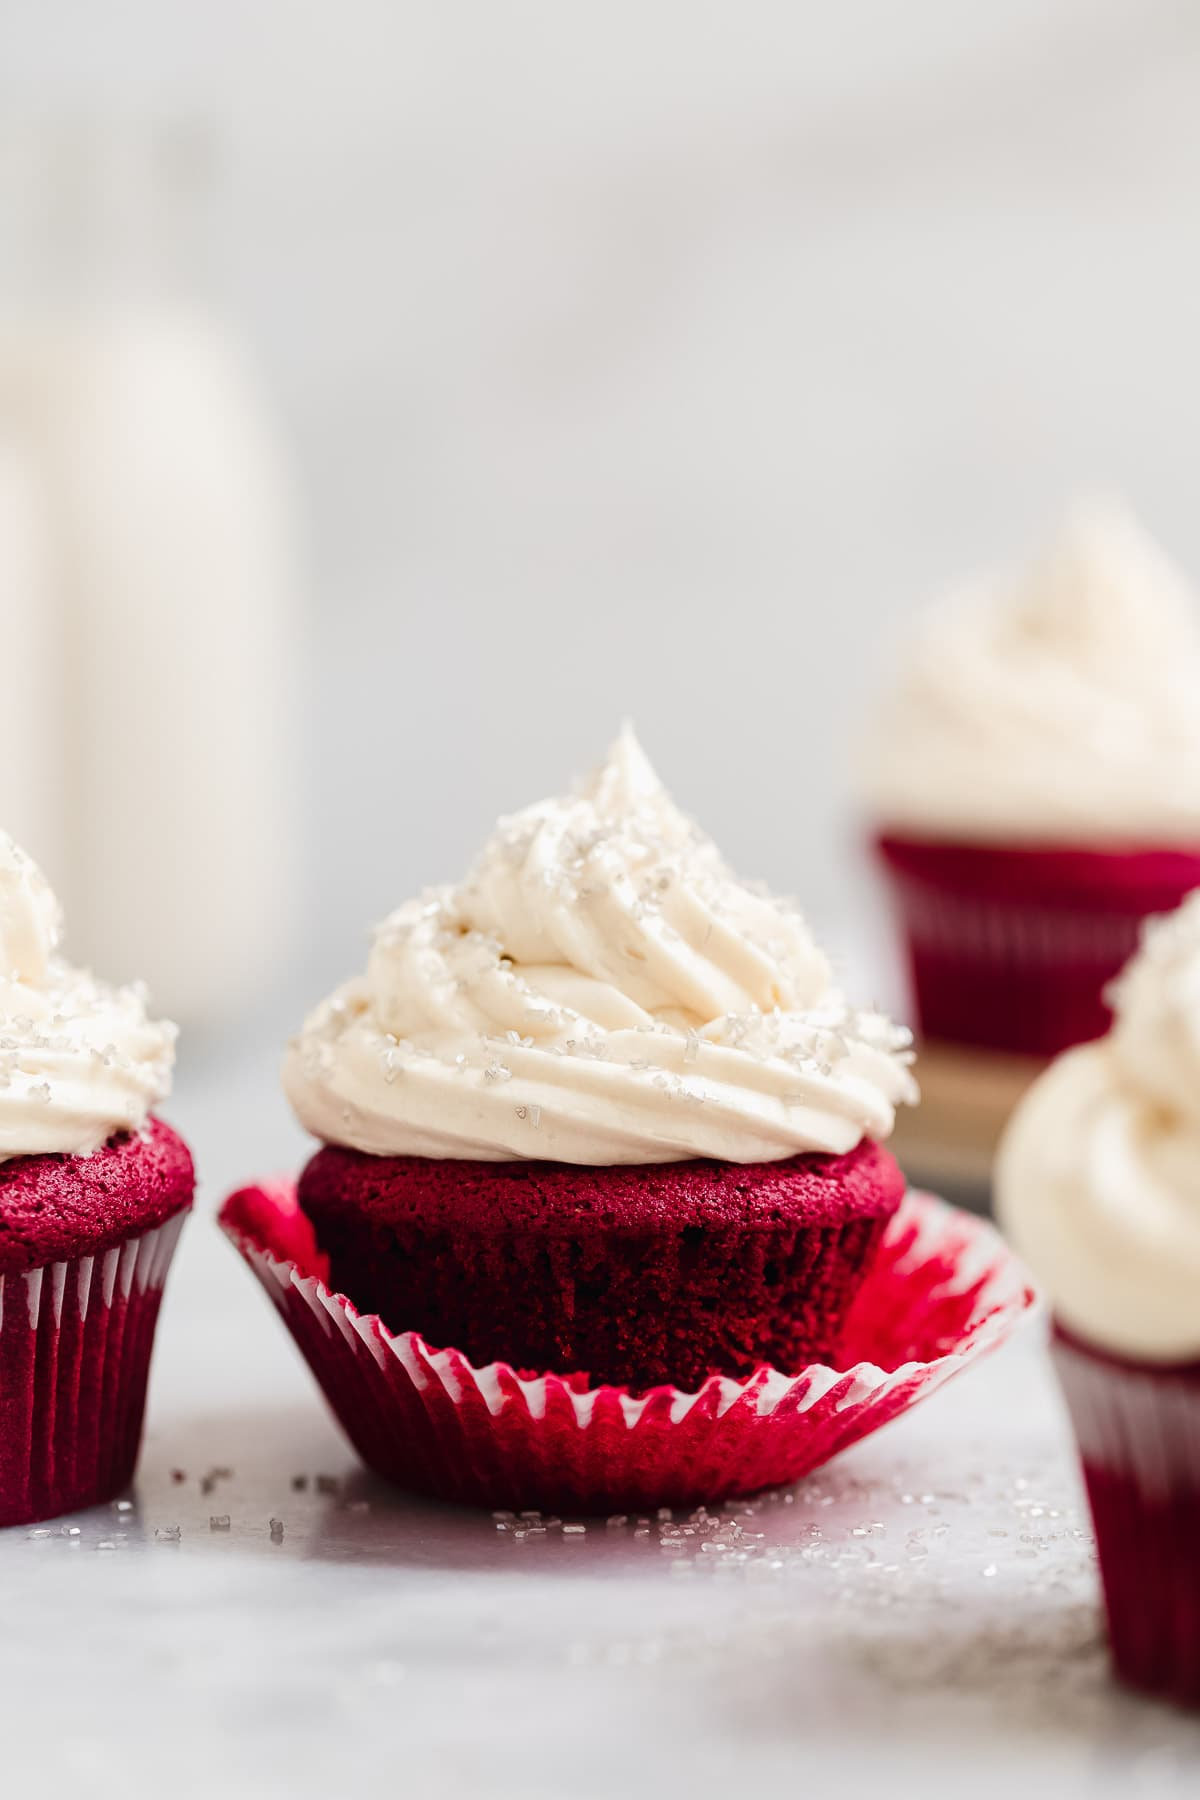 vegan red velvet cupcakes with milk in the background